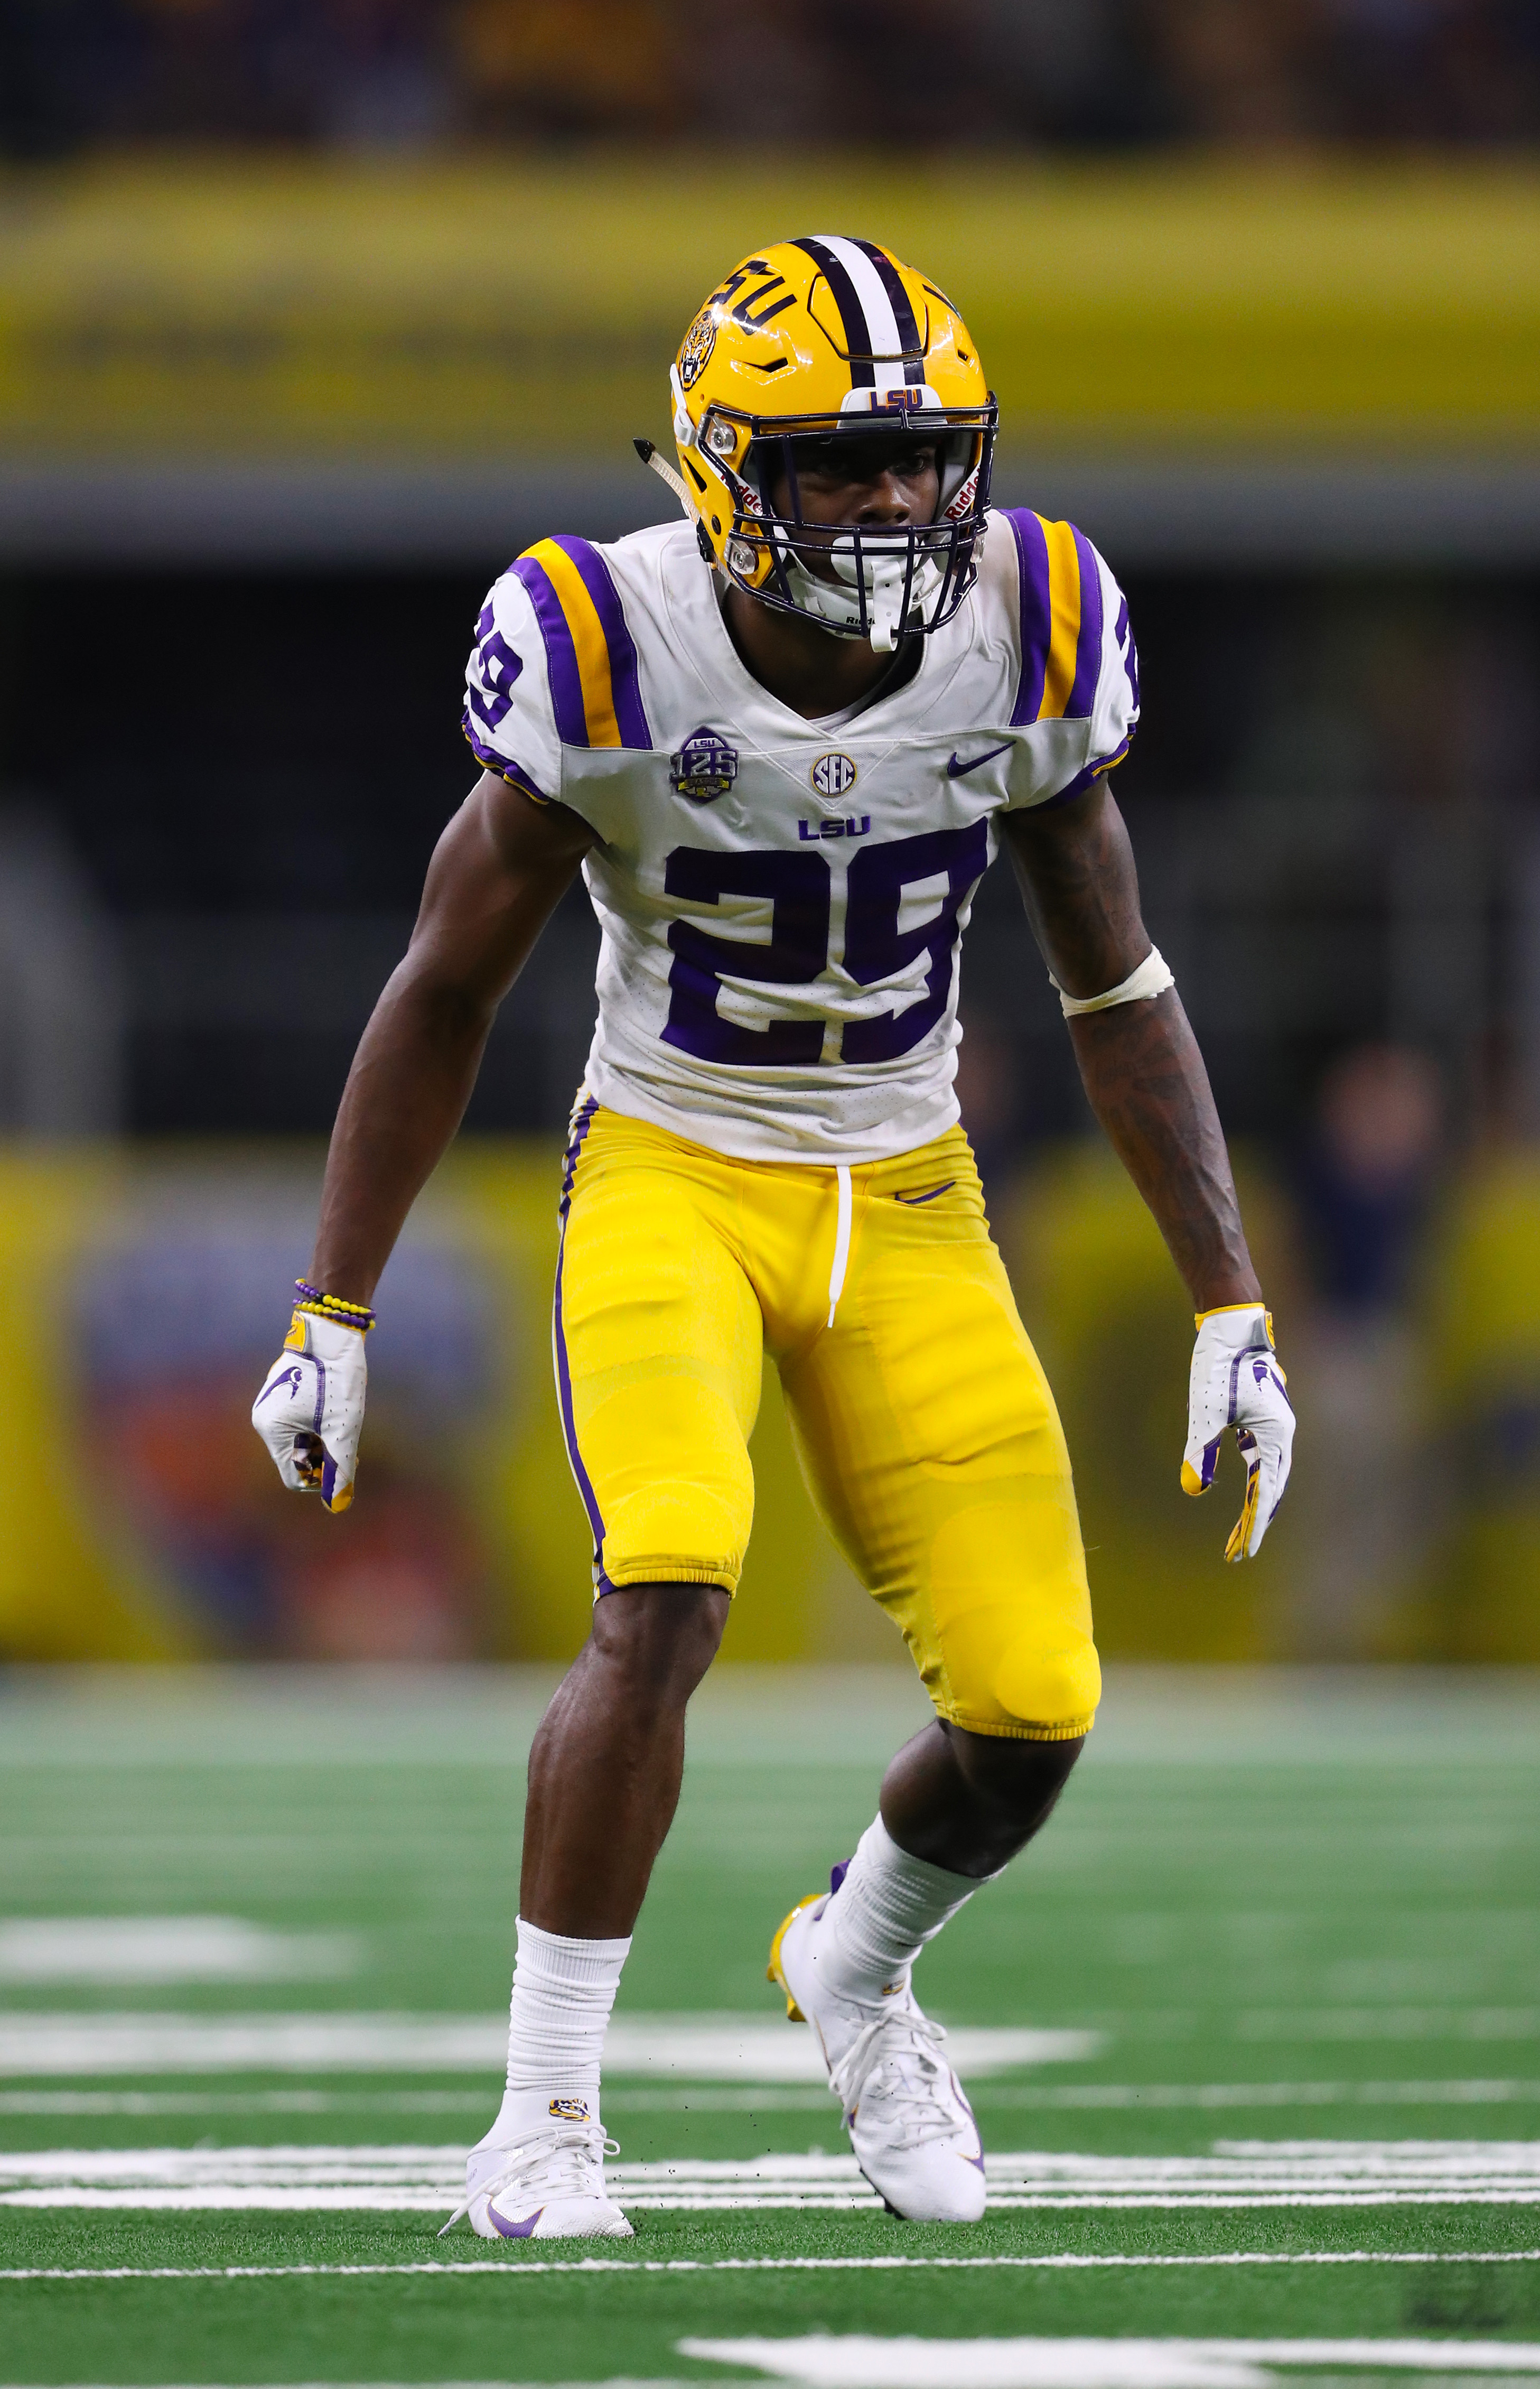 LSU Tigers CB Greedy Williams in action against the Miami Hurricanes, Sep. 2, 2018.